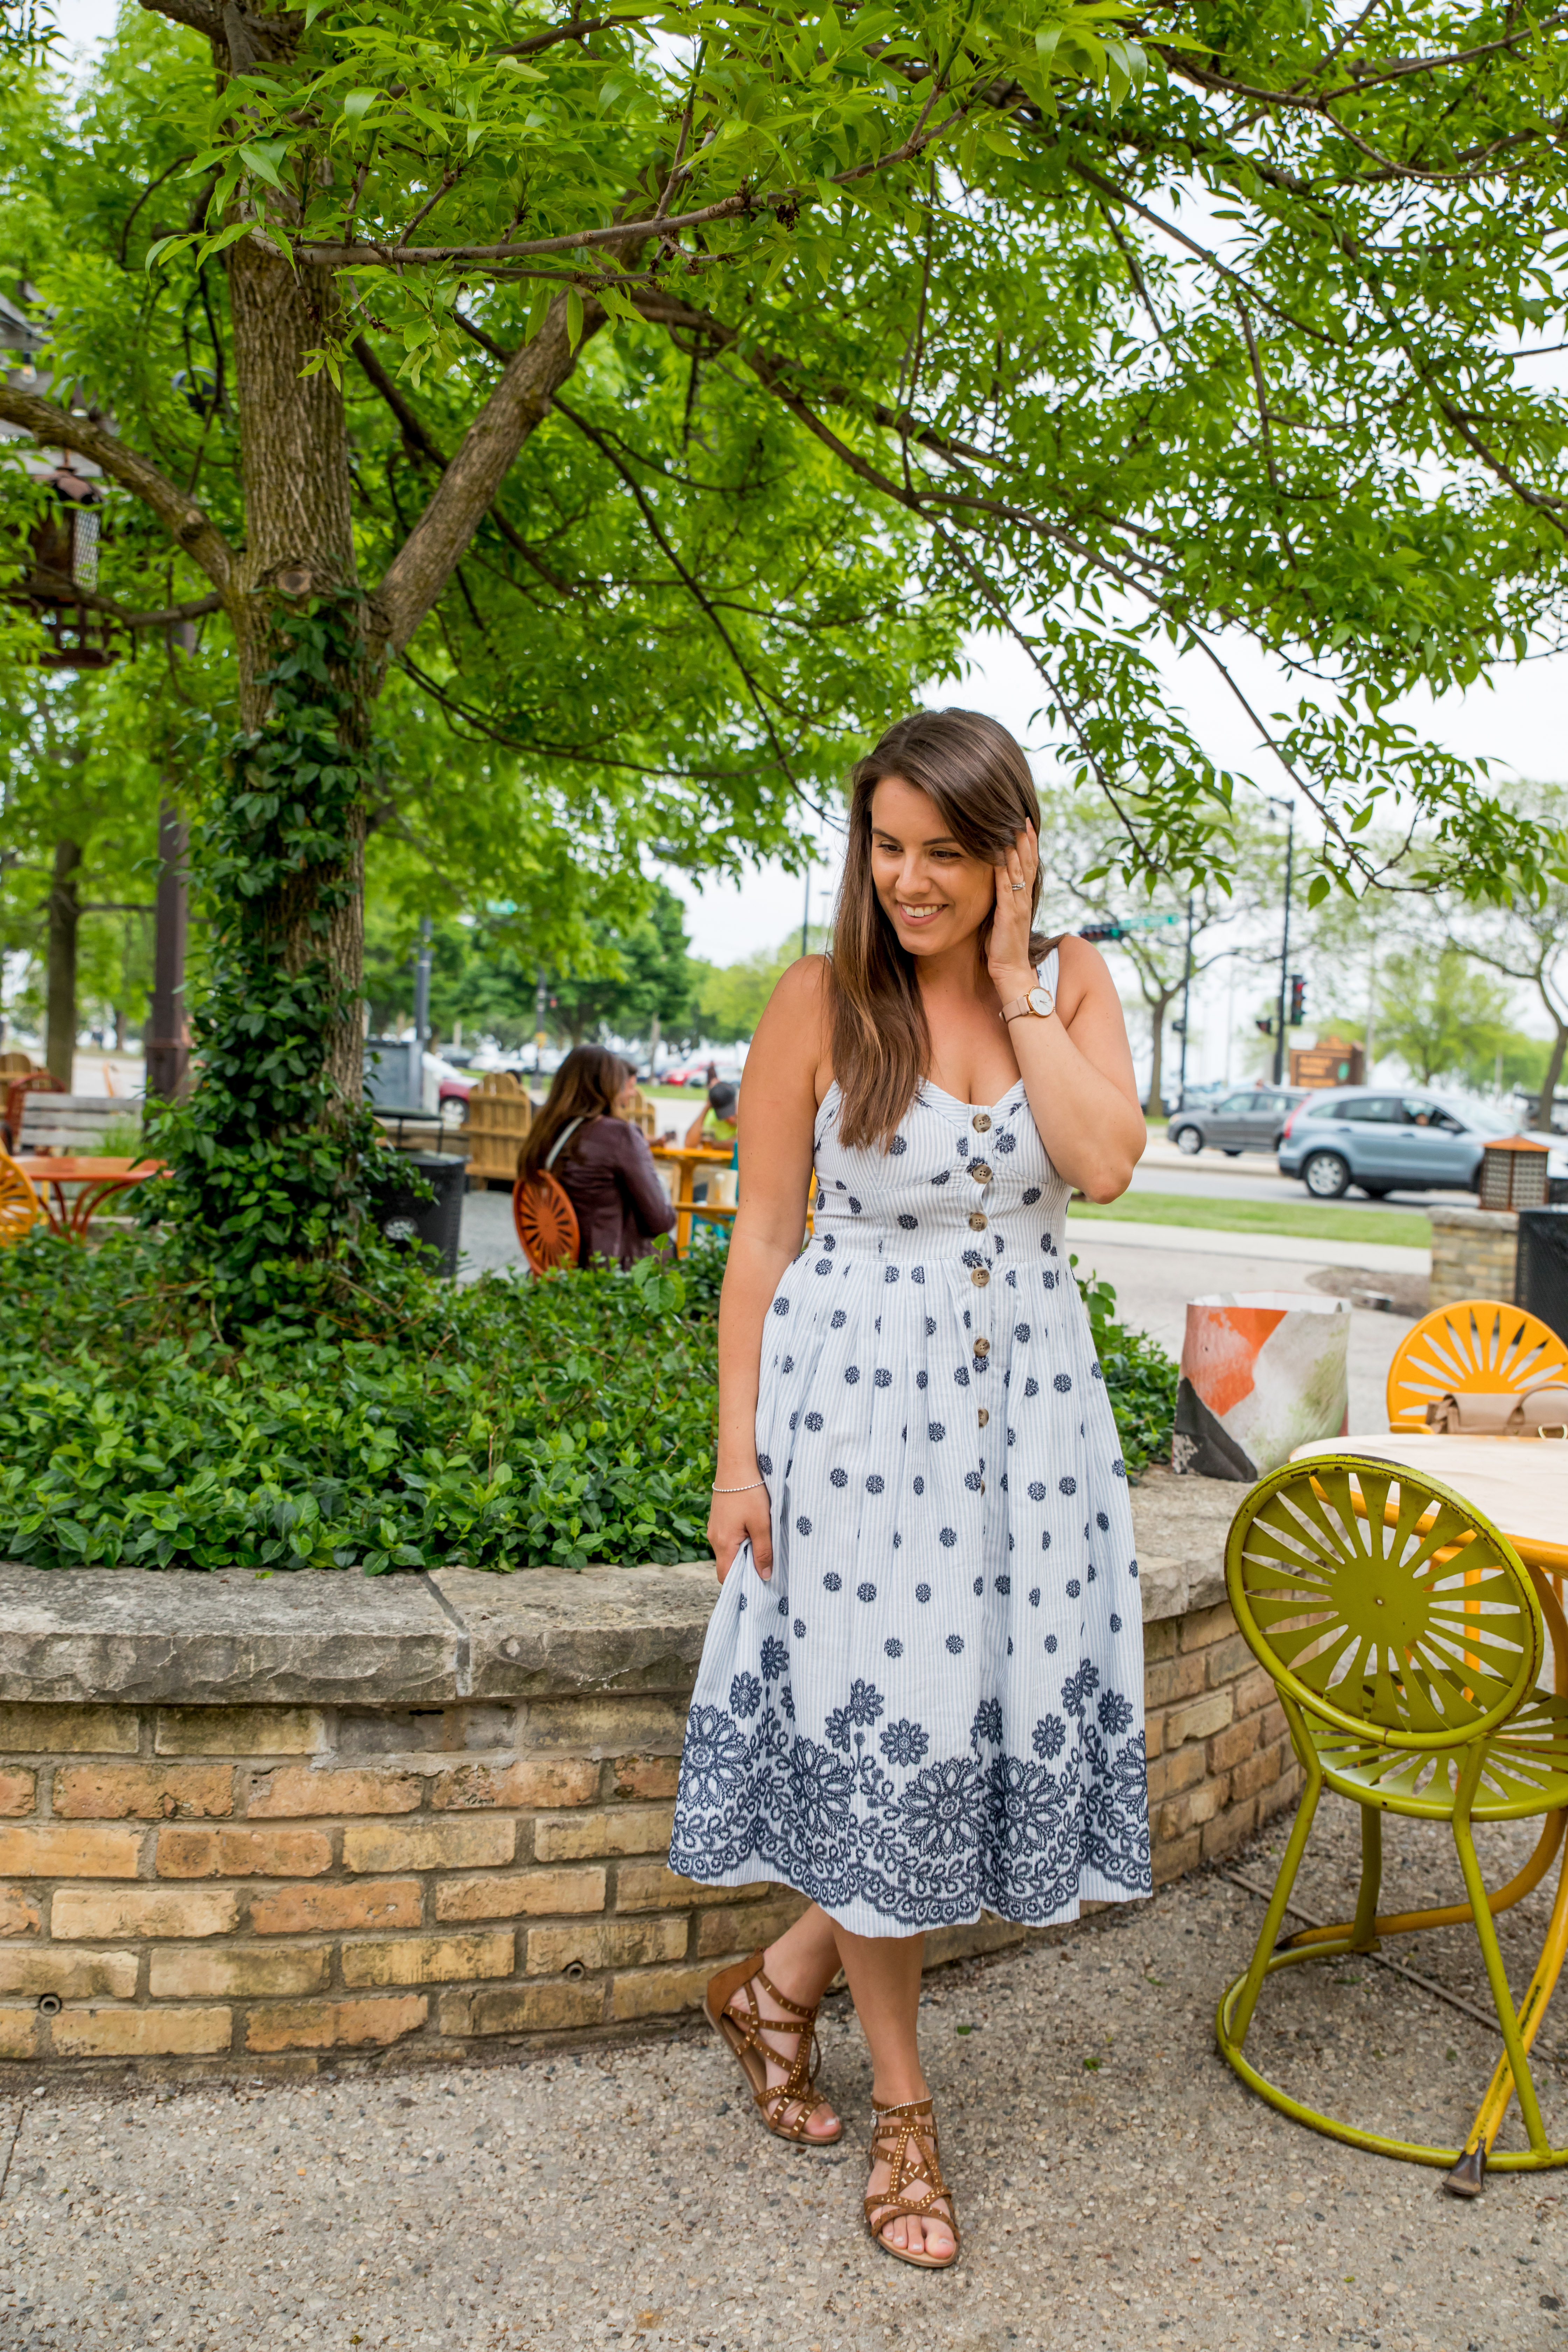 checkinwithchels, check in with chels, studio k10, blogger photographer